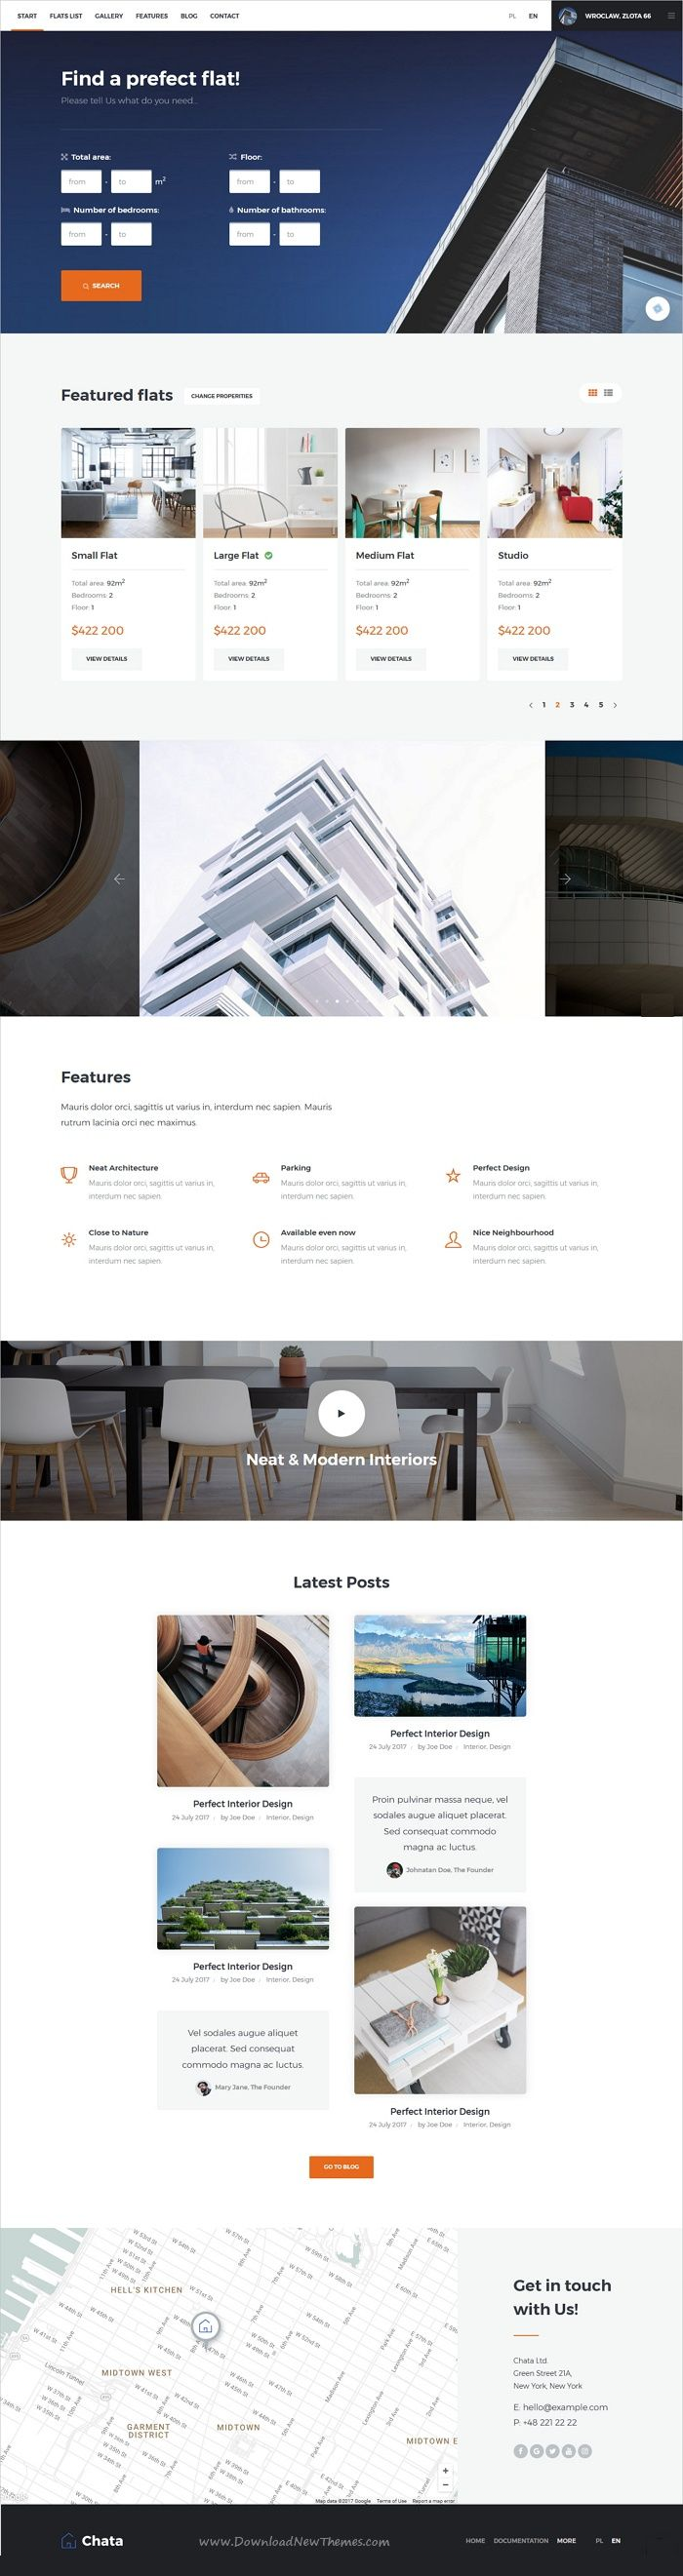 Chata is clean and modern design 4in1 responsive #HTML template for #property, professional real estate and #architecture agencies eCommerce website download now..